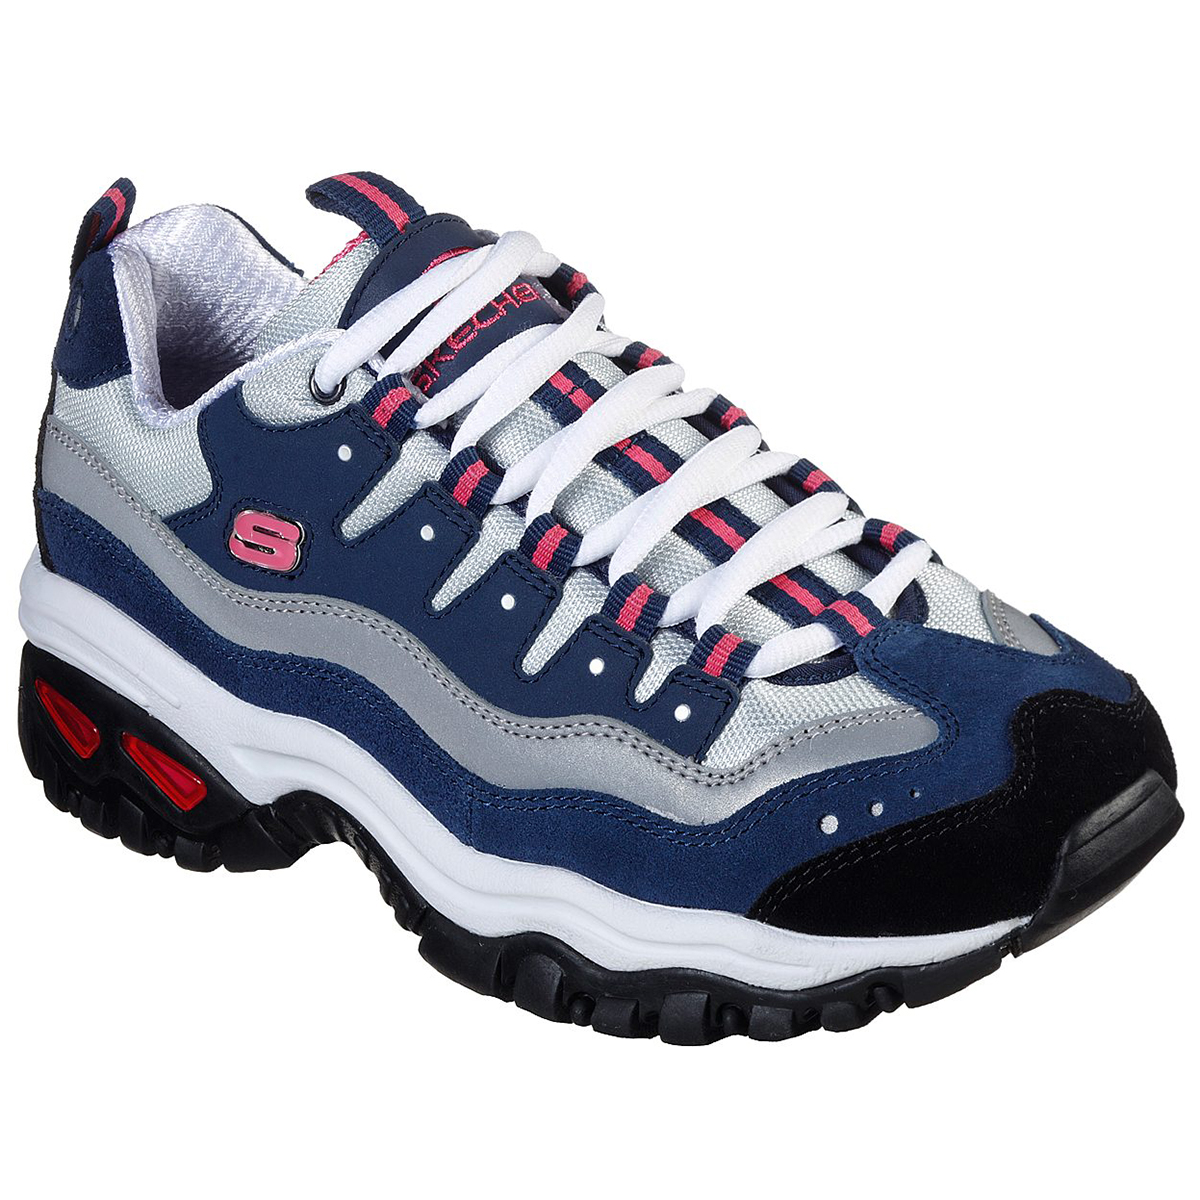 Skechers Women's Energy Wave Sneakers - Blue, 9.5